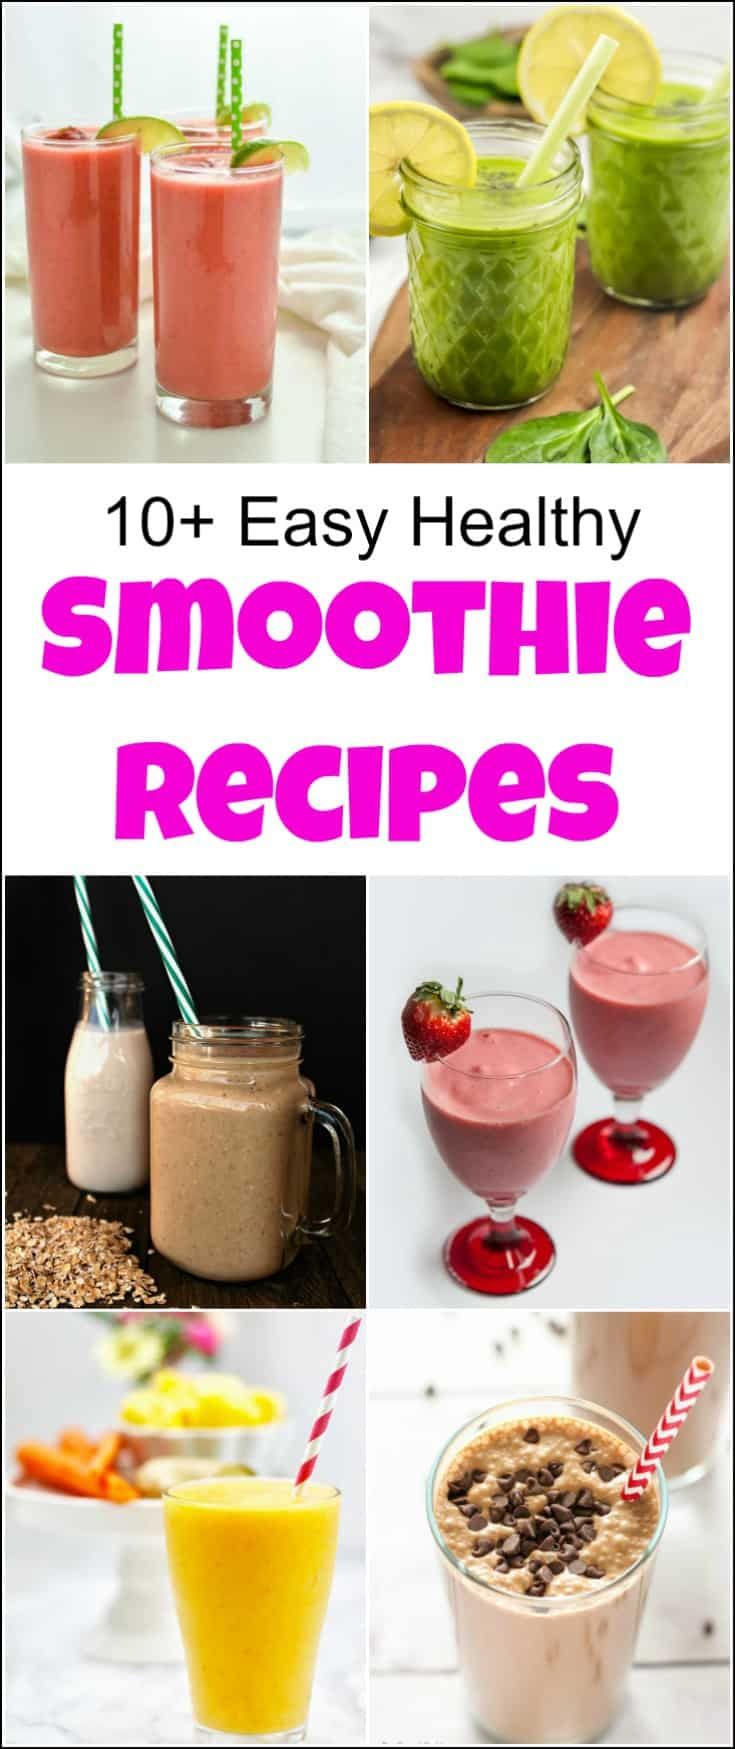 Great variety of easy healthy smoothie recipes, including fruit smoothies and many simple healthy smoothie recipes that your whole family will love. Get ready to see how to make healthy smoothies with these delicious healthy smoothies. These nutritious smoothies are packed with fruit, protein and are healthy for all. #healthysmoothies #easysmoothierecipes #healthysmoothierecipes #easyhealthysmoothierecipes #smoothie #smoothierecipes